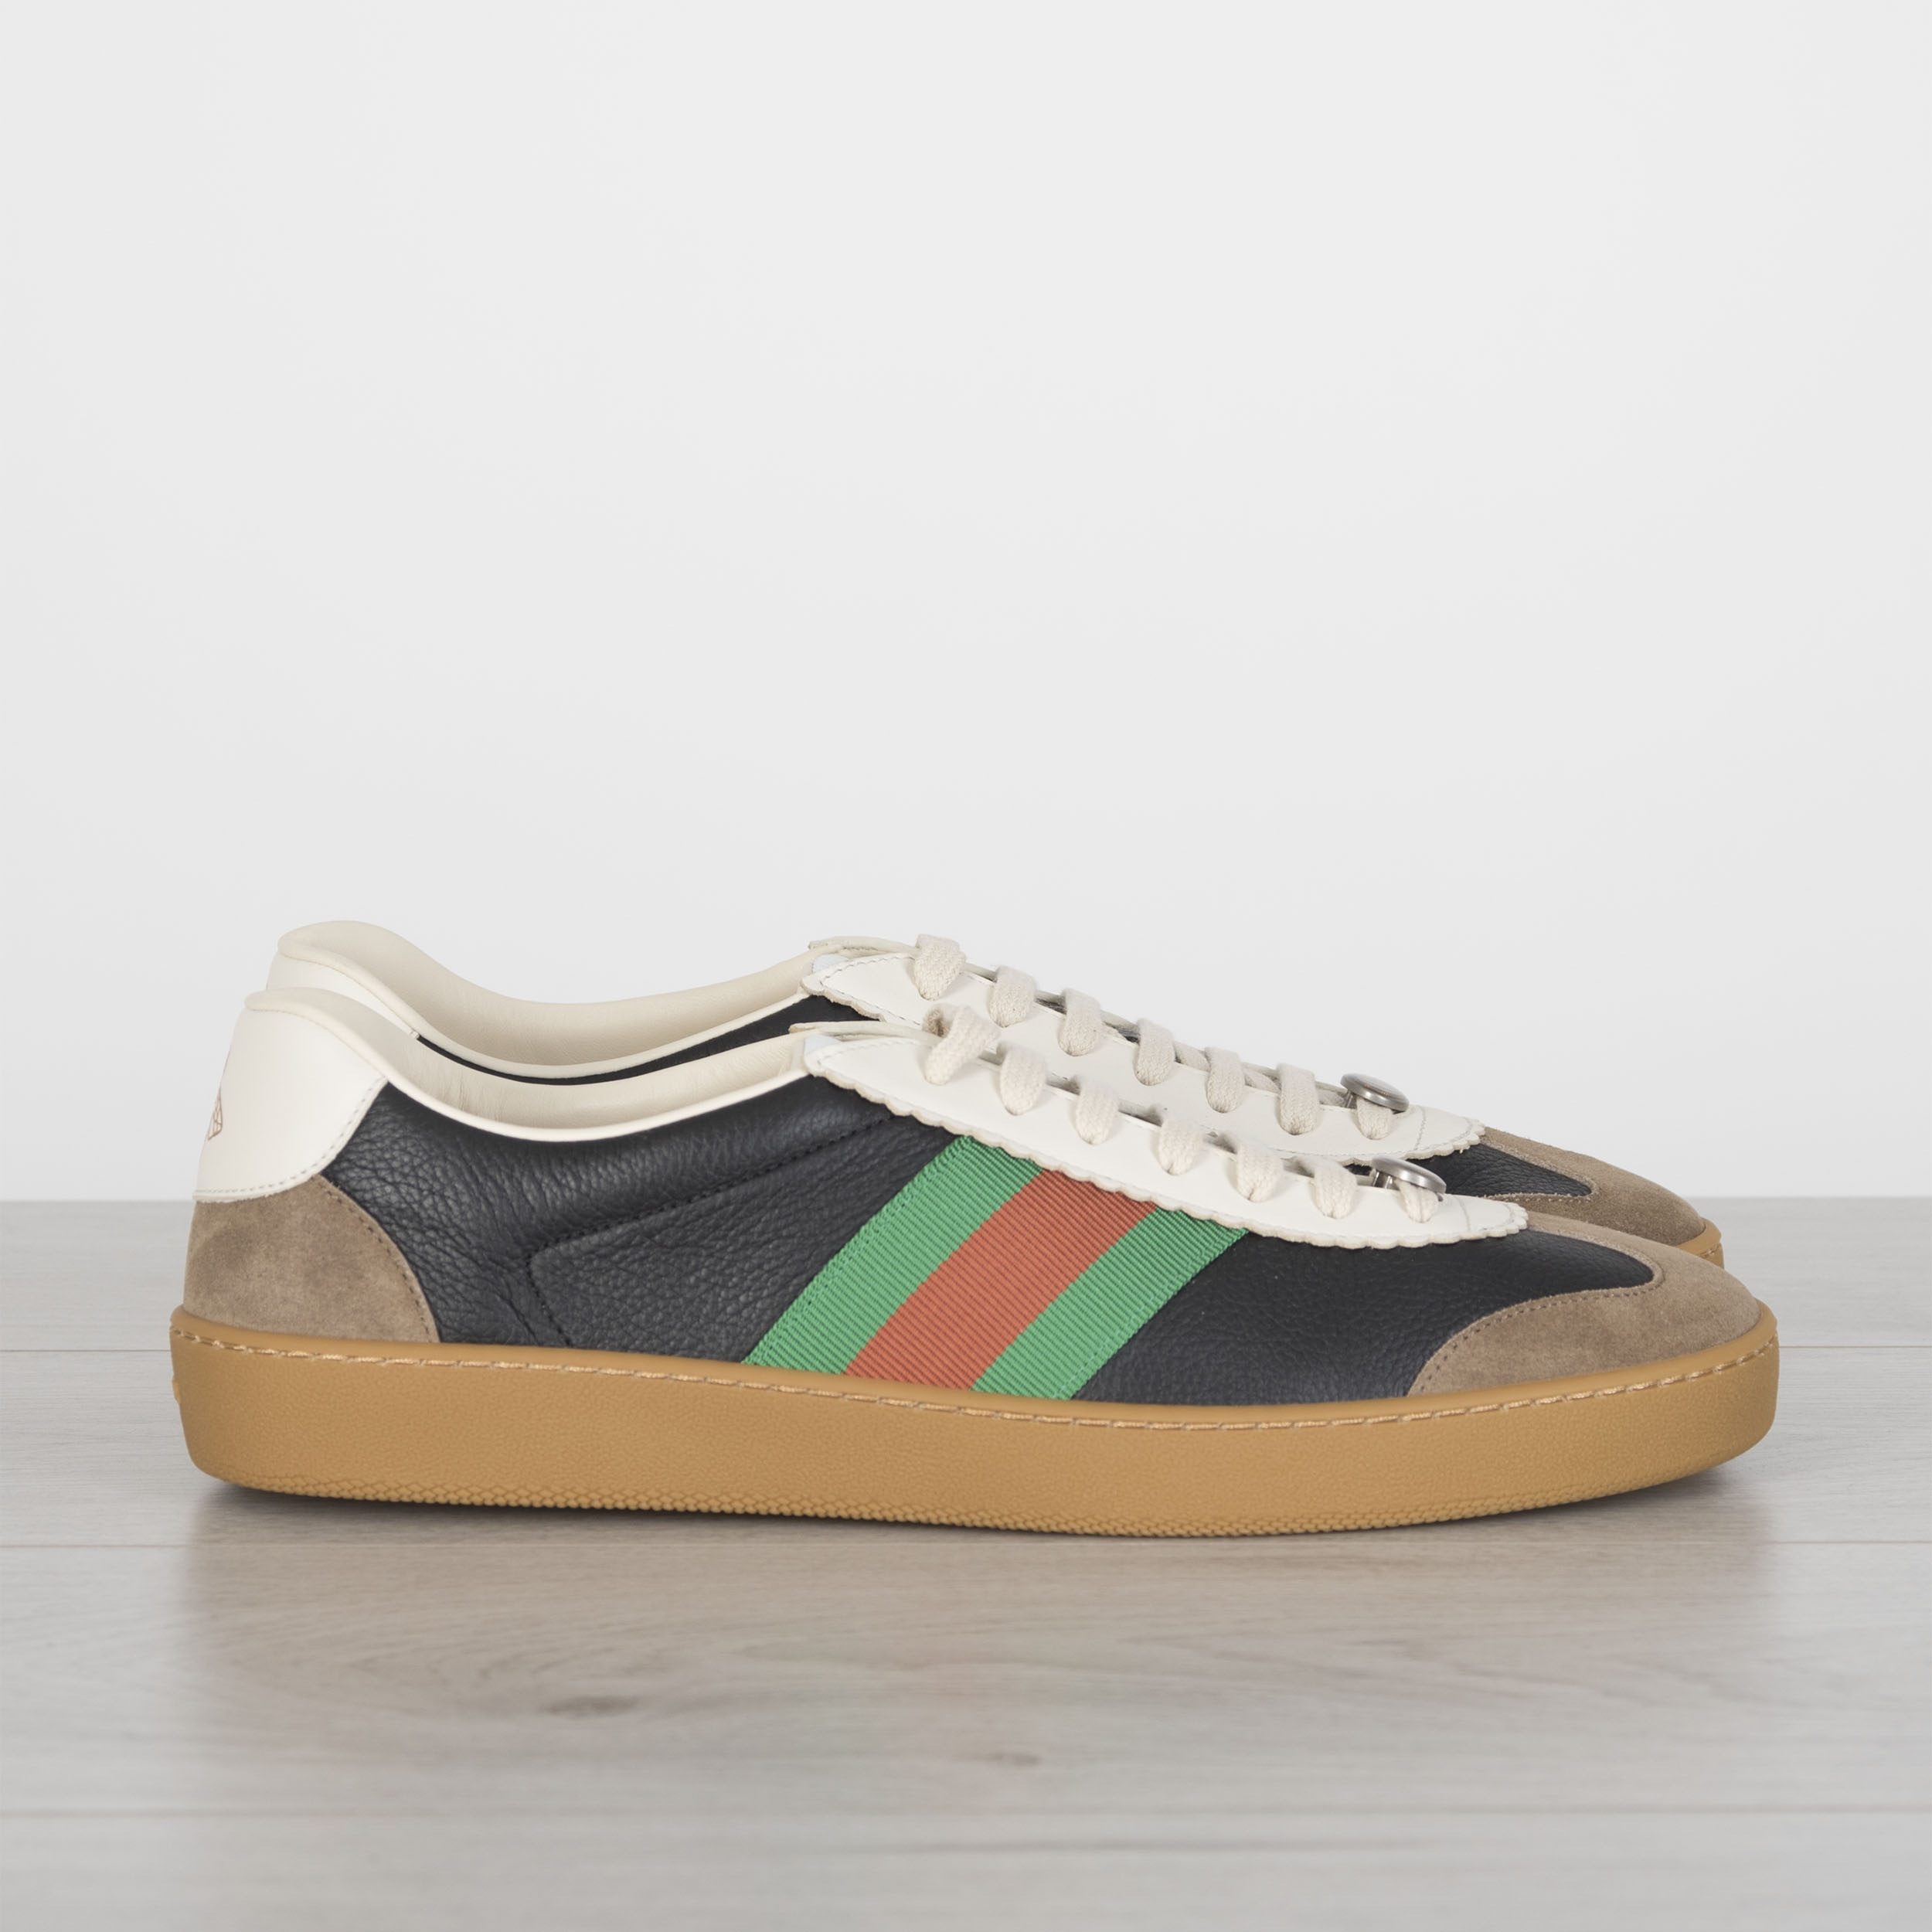 f9d517a4154 Details about GUCCI 650  G74 Sneakers With Web In Black Leather